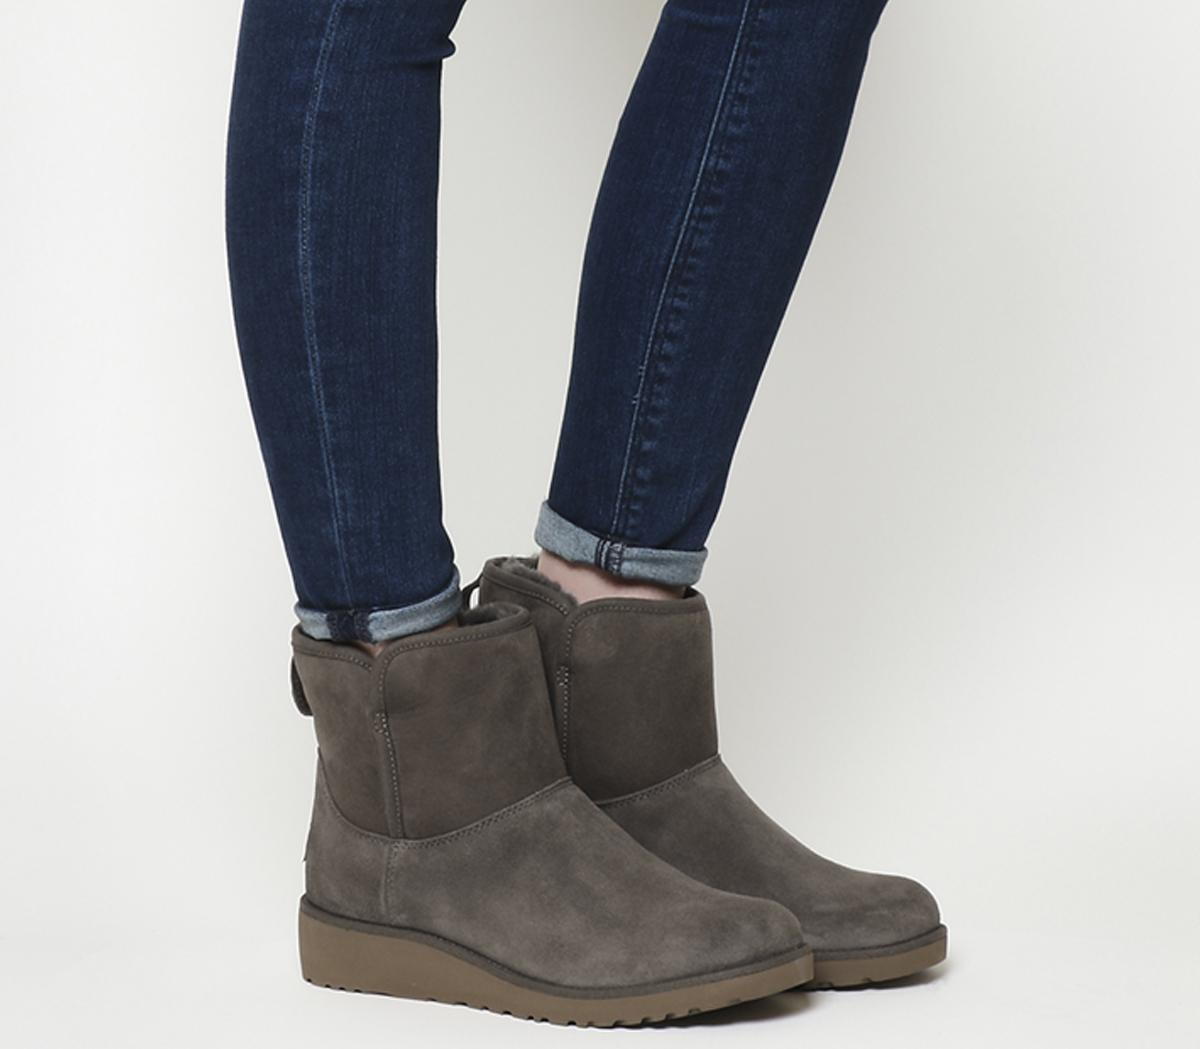 c3fec64716f Classic Slim Kristin Mini Boots. Double tap to zoom into the image. UGG ...